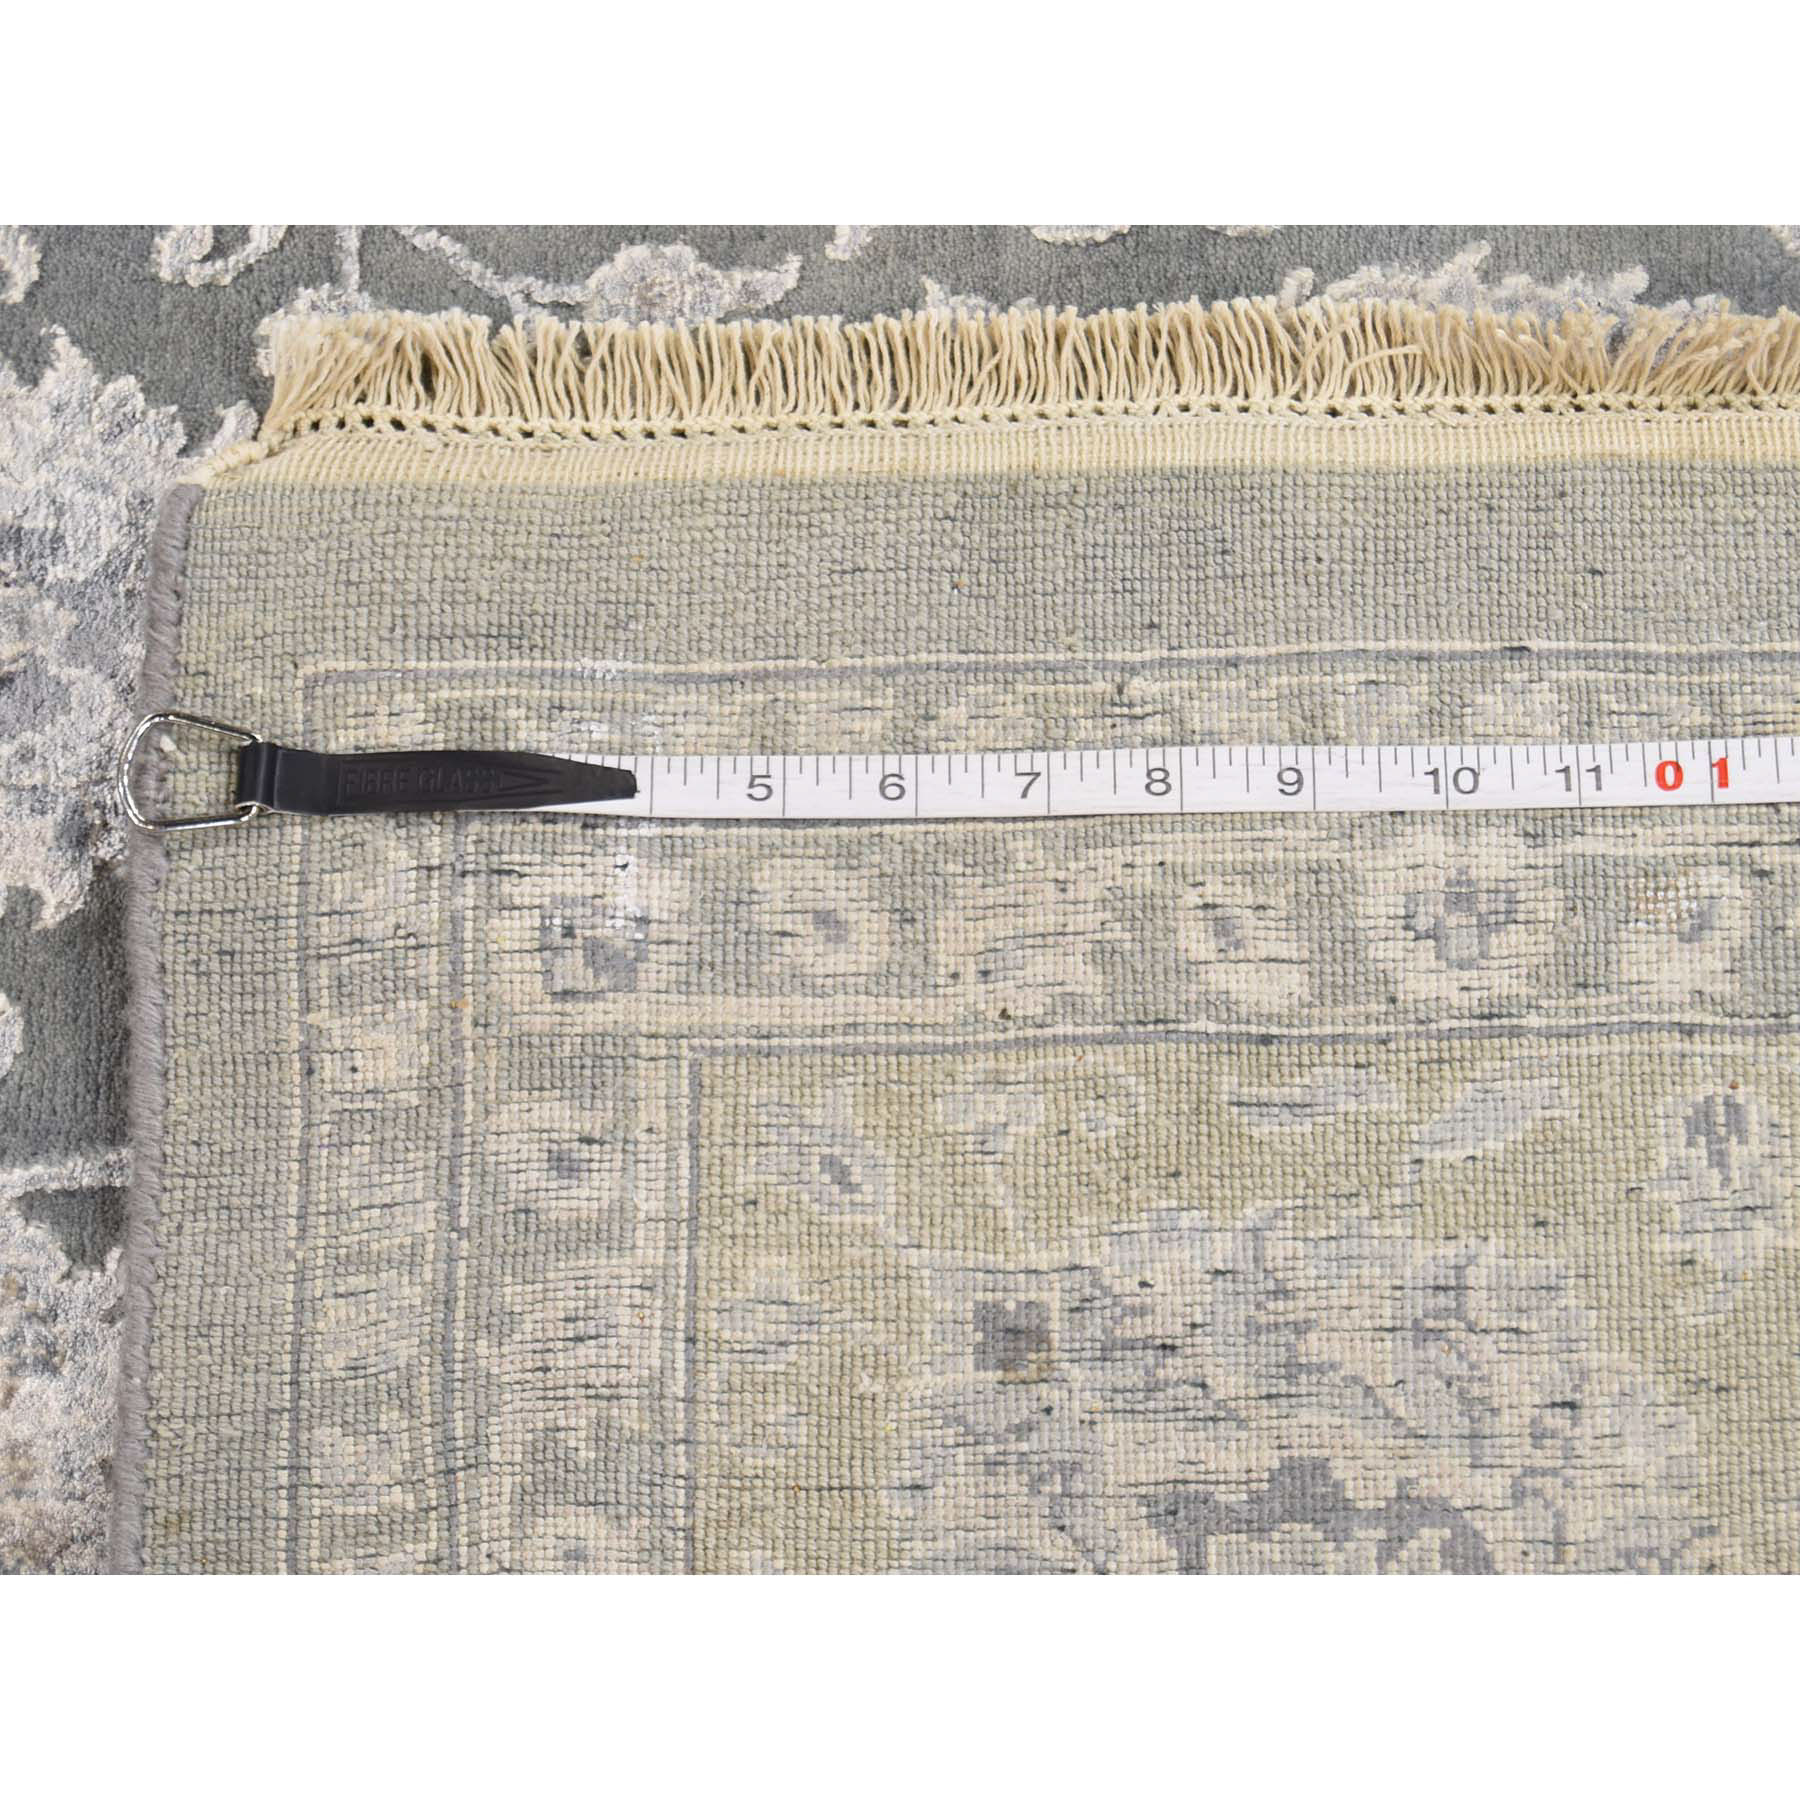 7-9--x10-1-- Wool and Silk 300 Kpsi Tone on Tone Kashan Hand-Knotted Rug